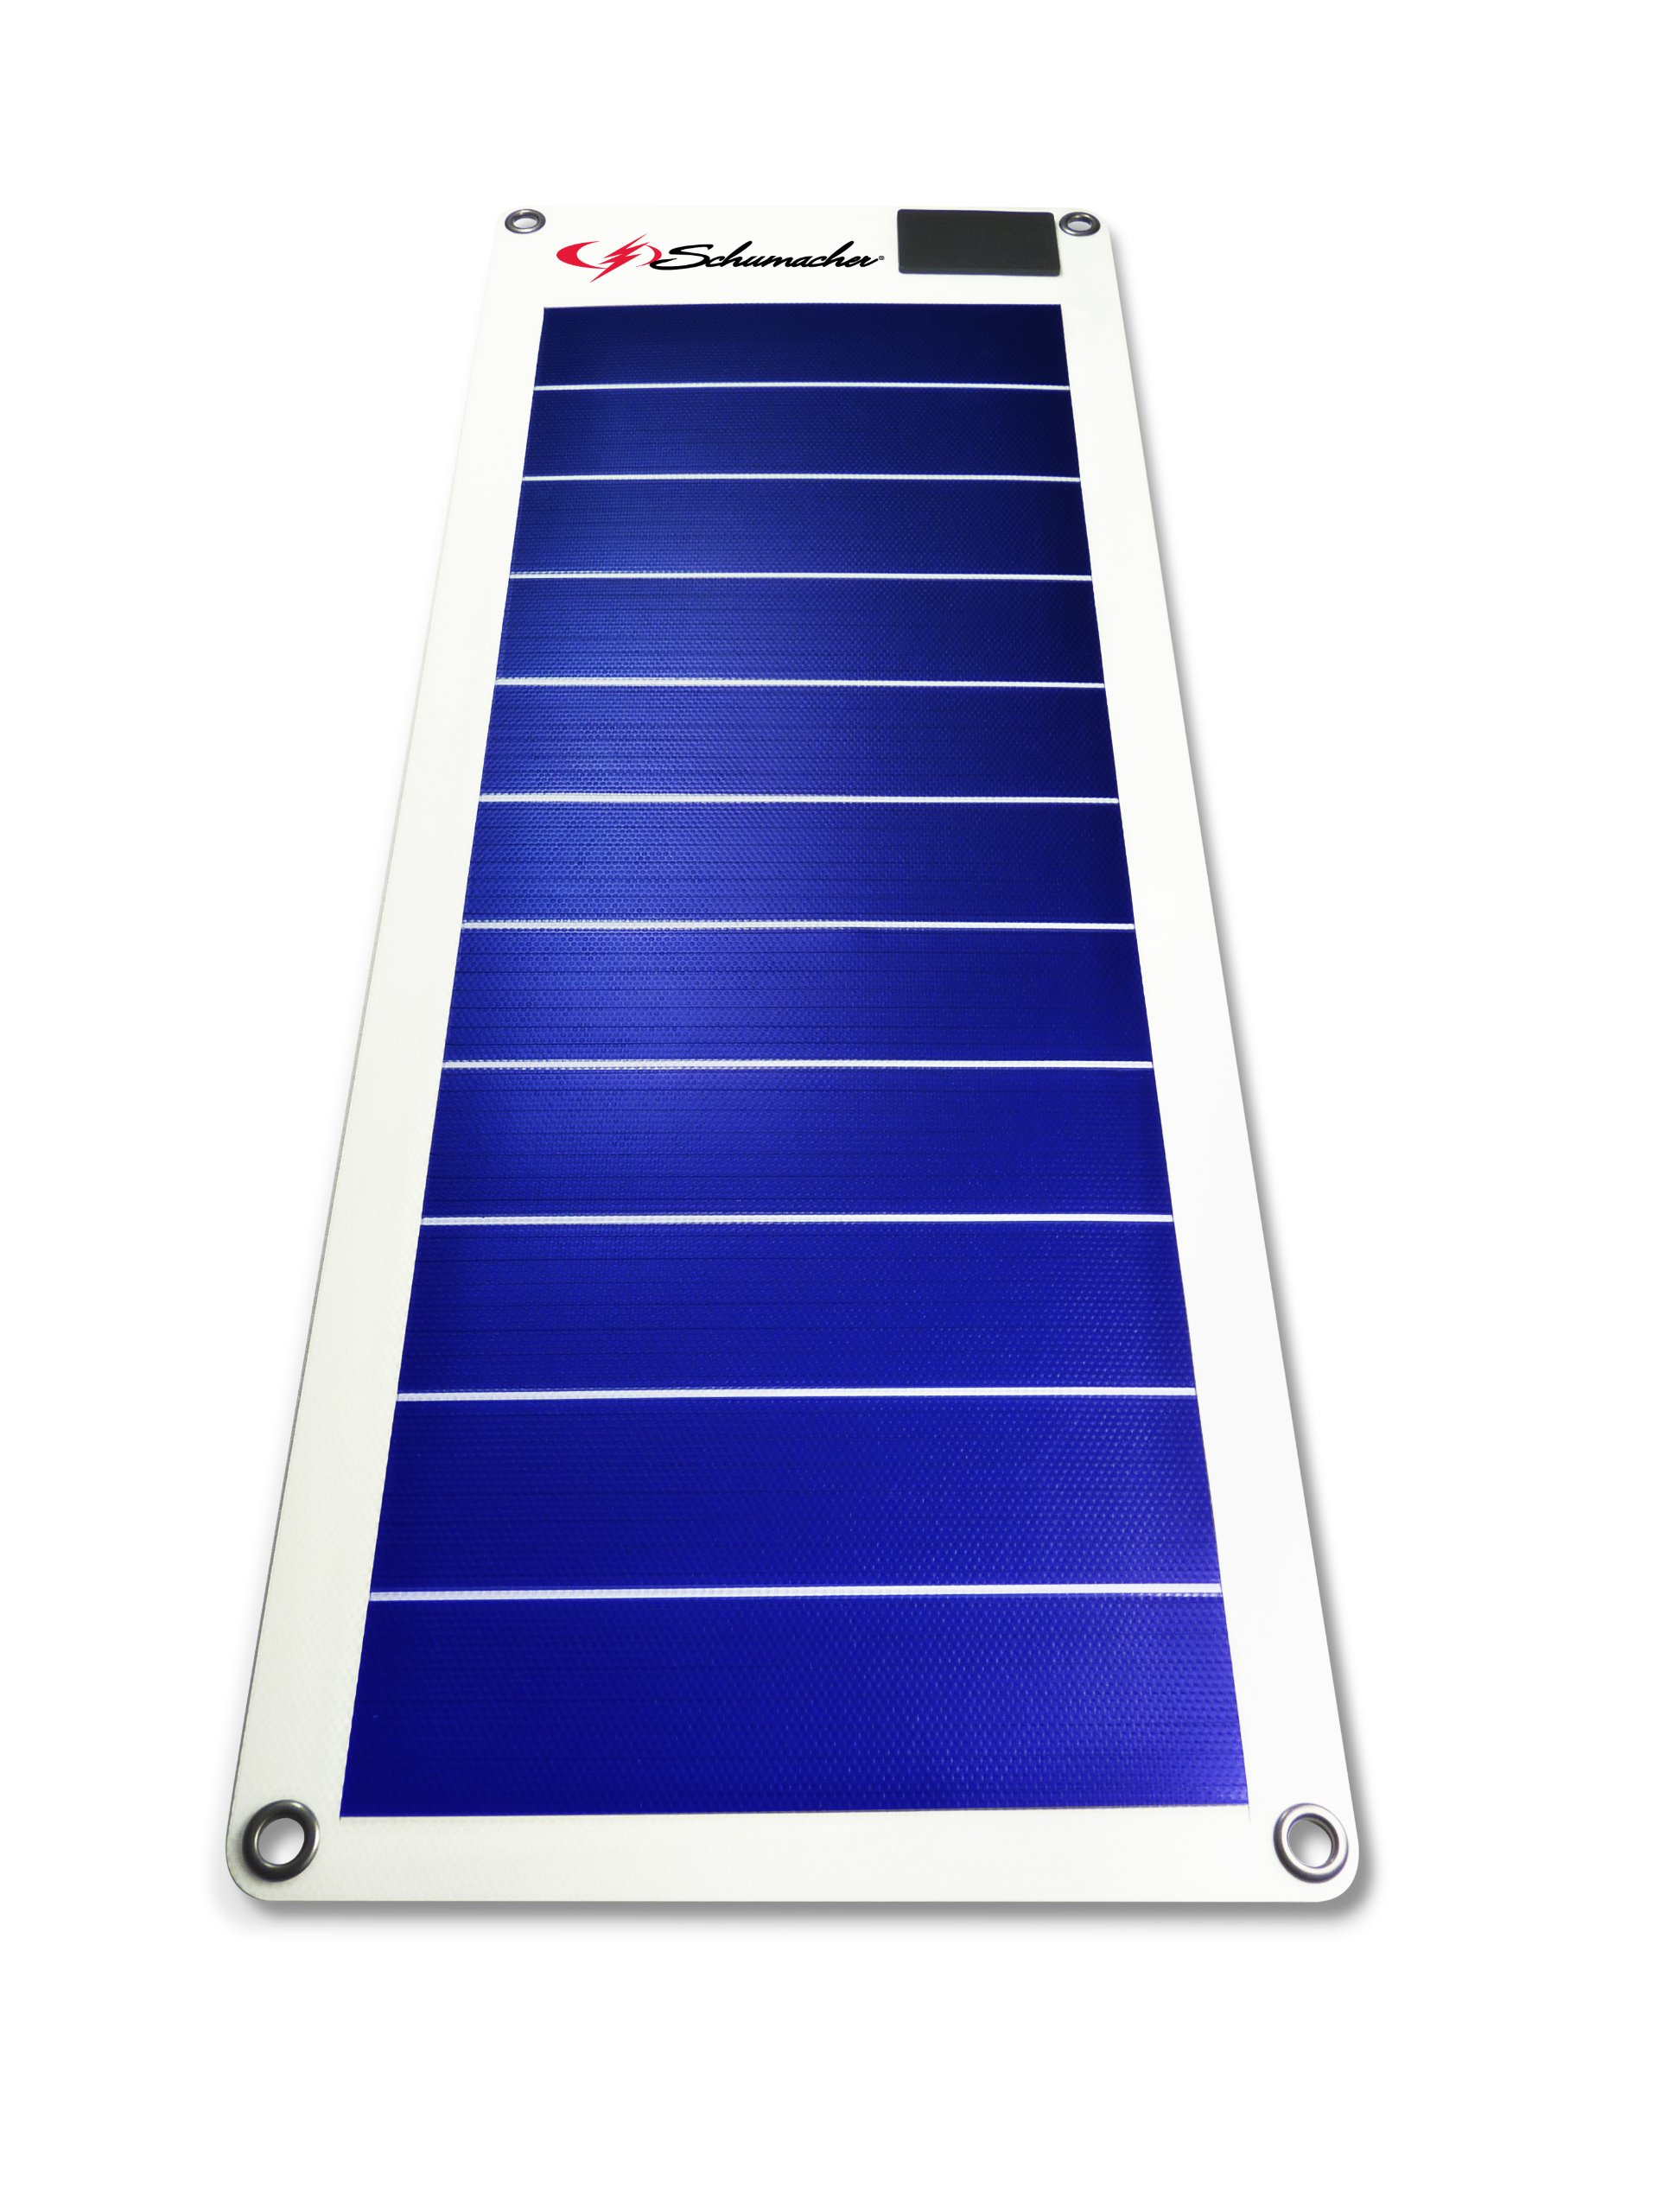 Schumacher SP-550 5.5W Rollable Solar Charger